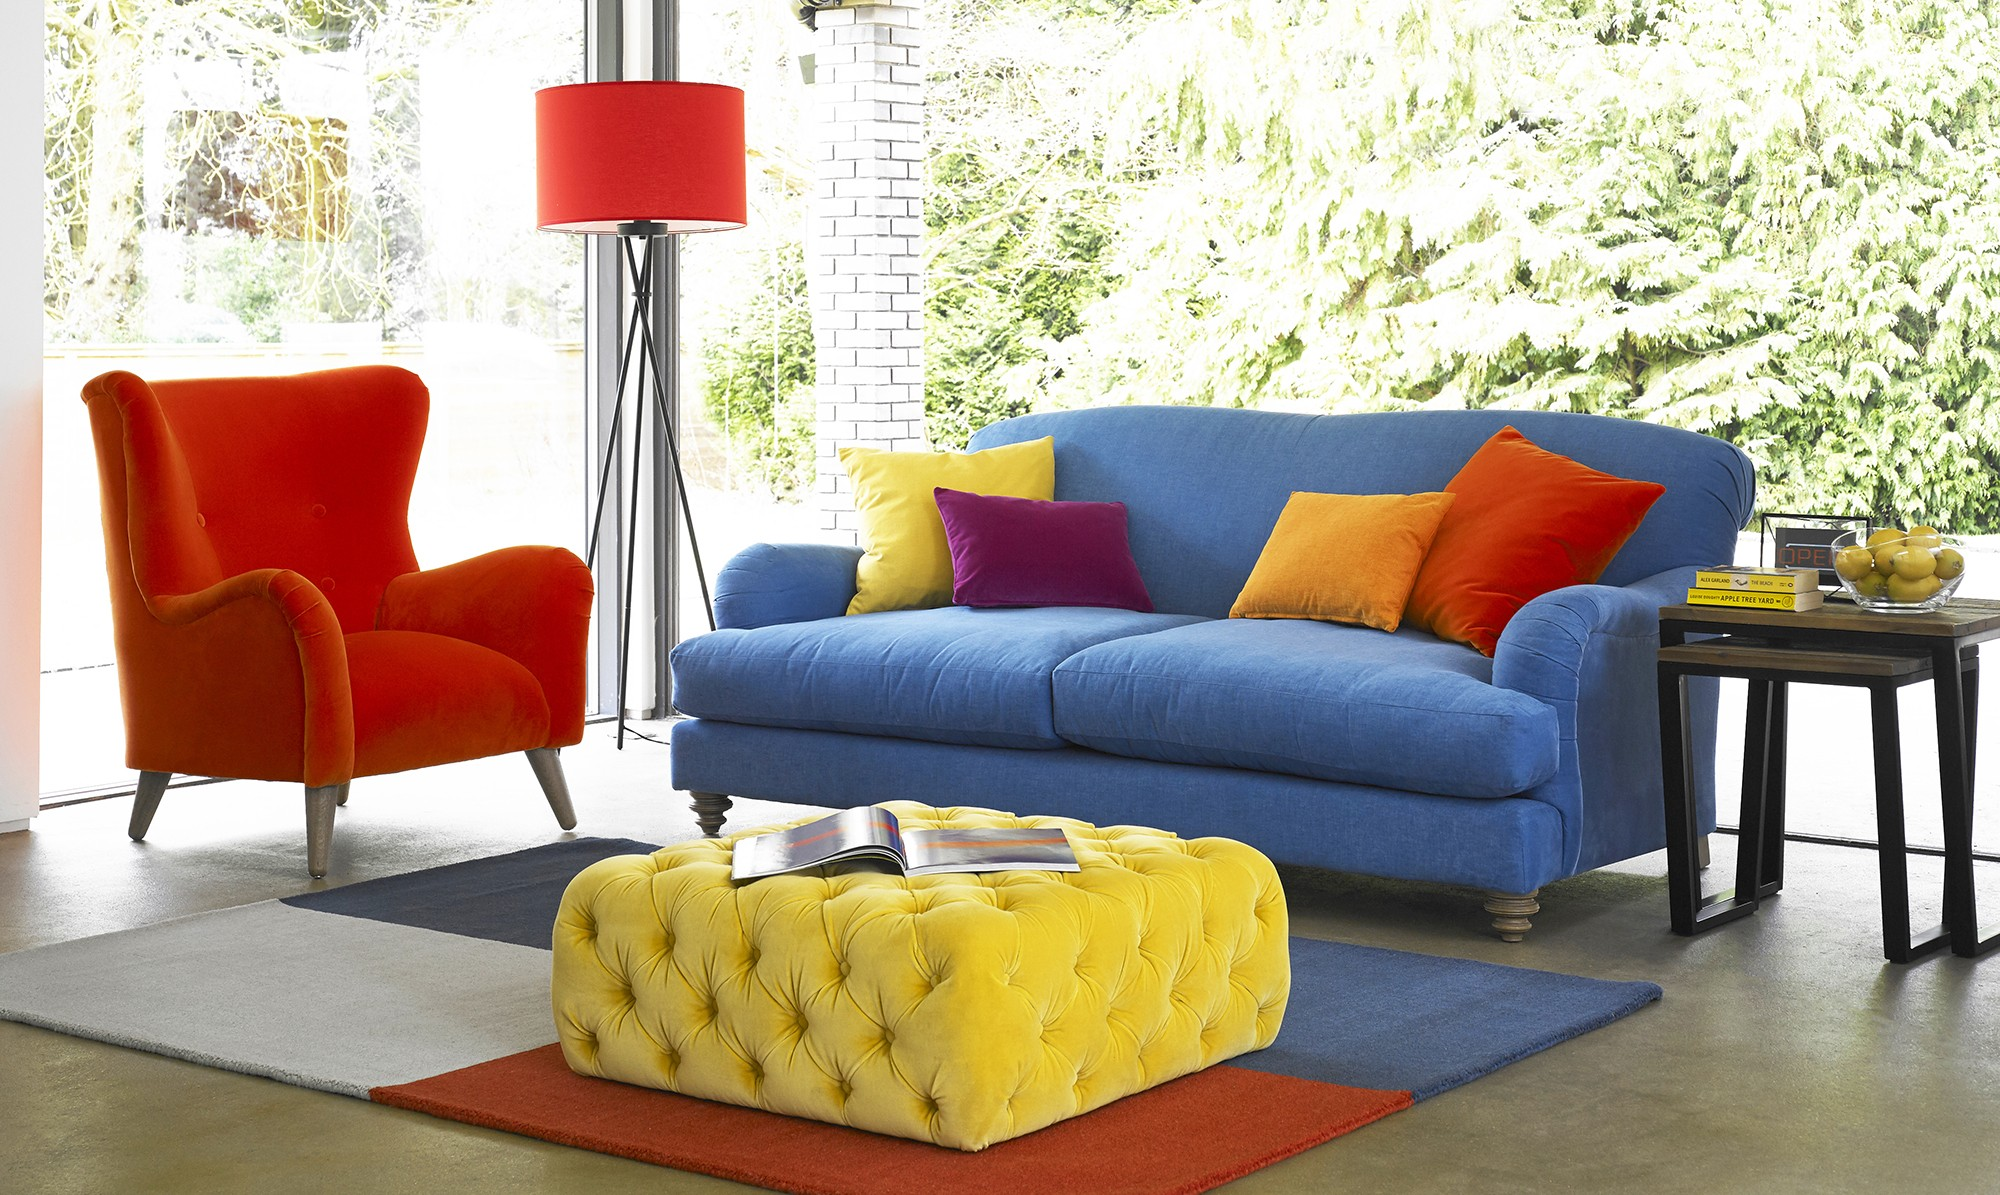 Portobello petit sofa and armchair